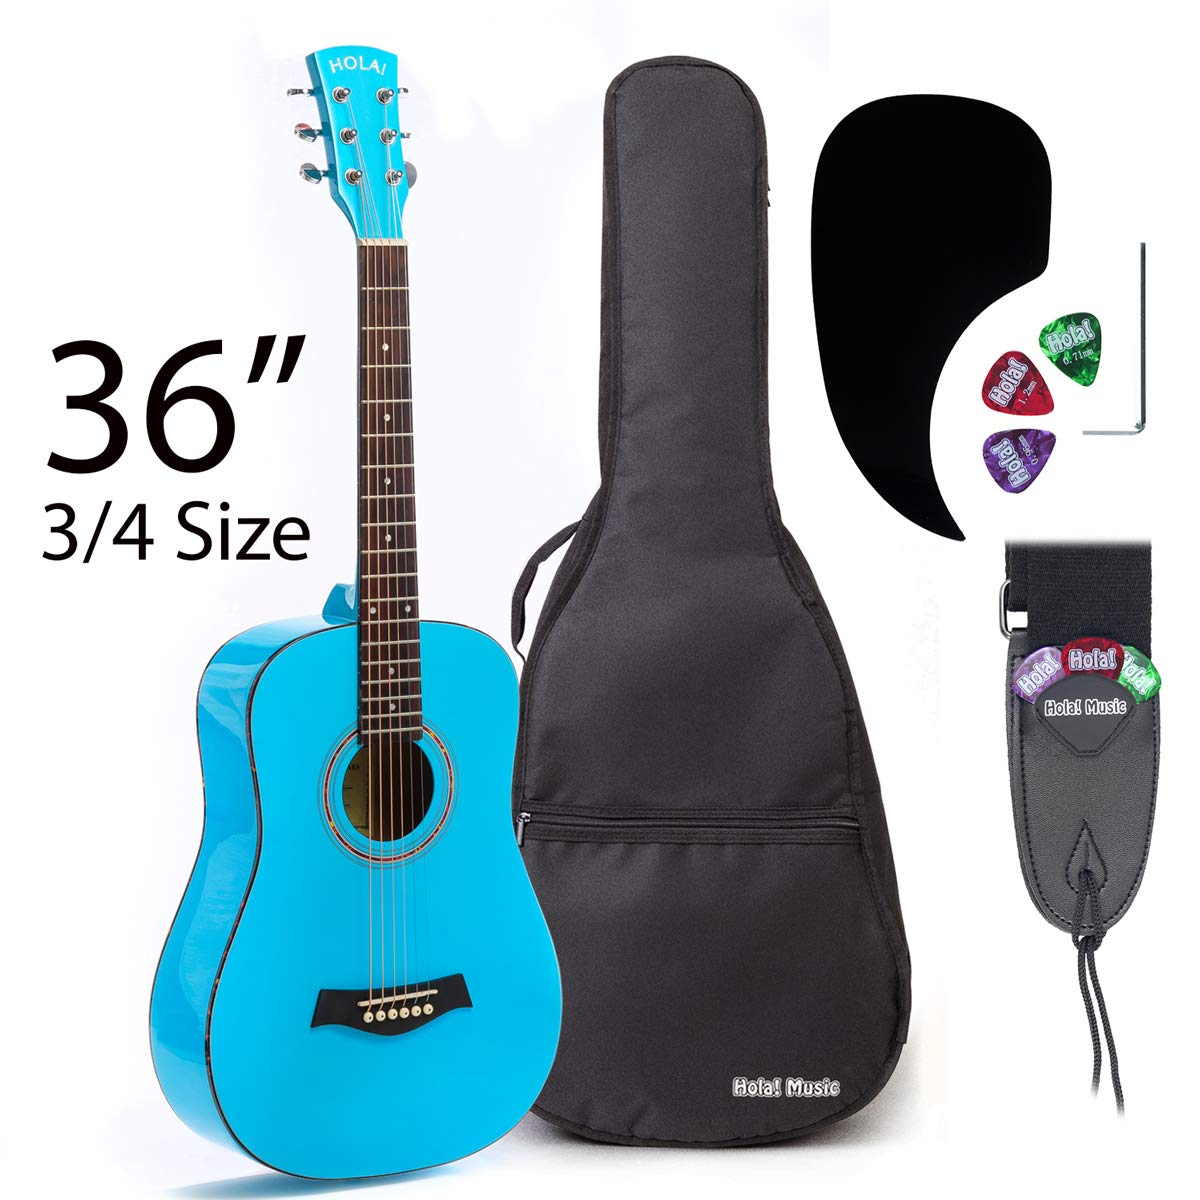 Acoustic Guitar Bundle Junior (Travel) Series by Hola! Music with D'Addario EXP16 Steel Strings, Padded Gig Bag, Guitar Strap and Picks, 3/4 Size 36 Inch (Model HG-36LB), Light Blue by Hola! Music